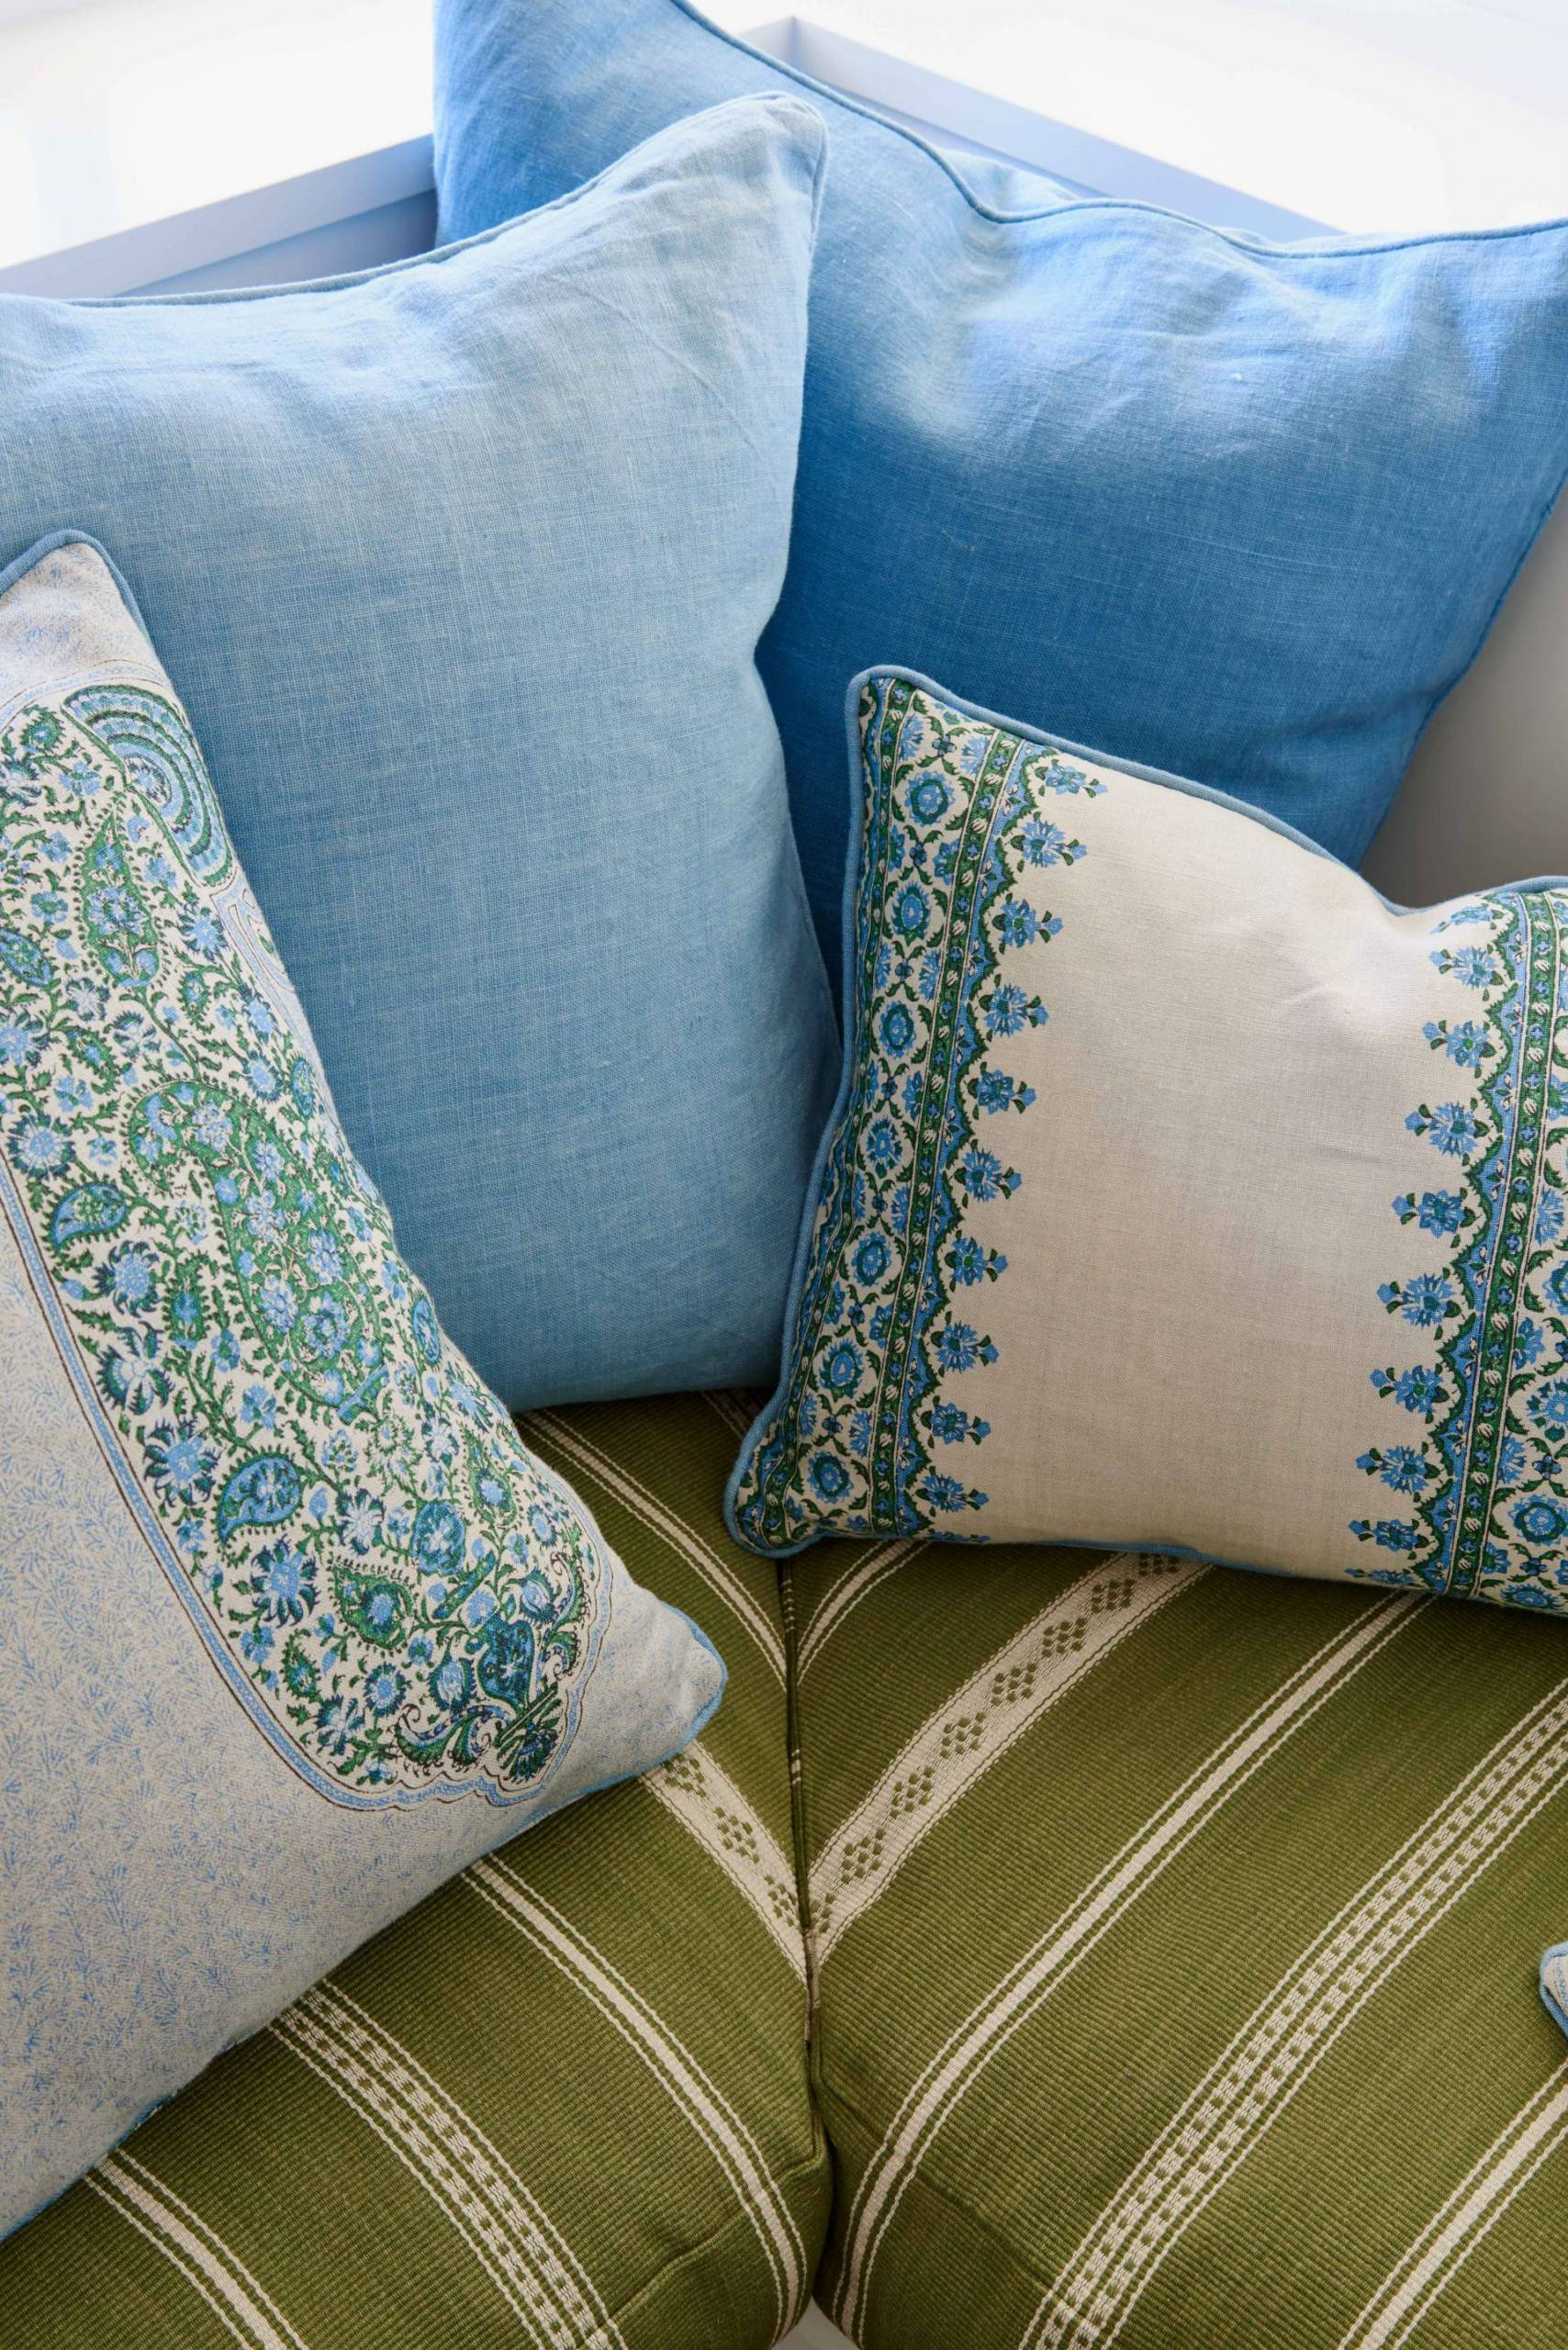 Patterned Blue and Cream Throw Pillows on Upholstered Bench